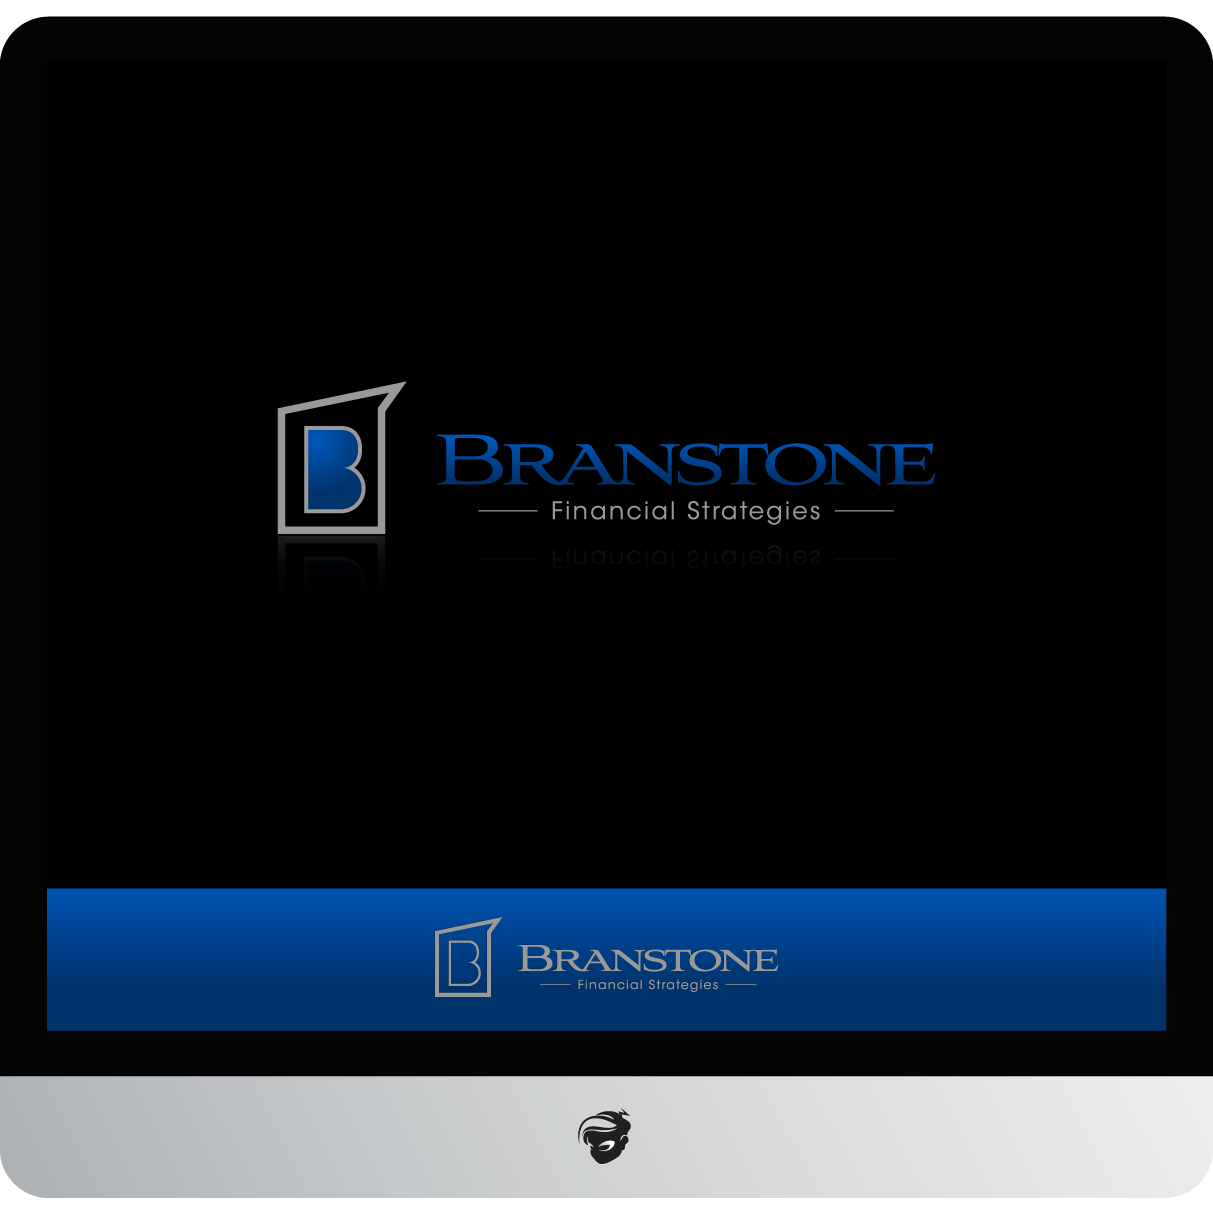 Logo Design by zesthar - Entry No. 229 in the Logo Design Contest Inspiring Logo Design for Branstone Financial Strategies.